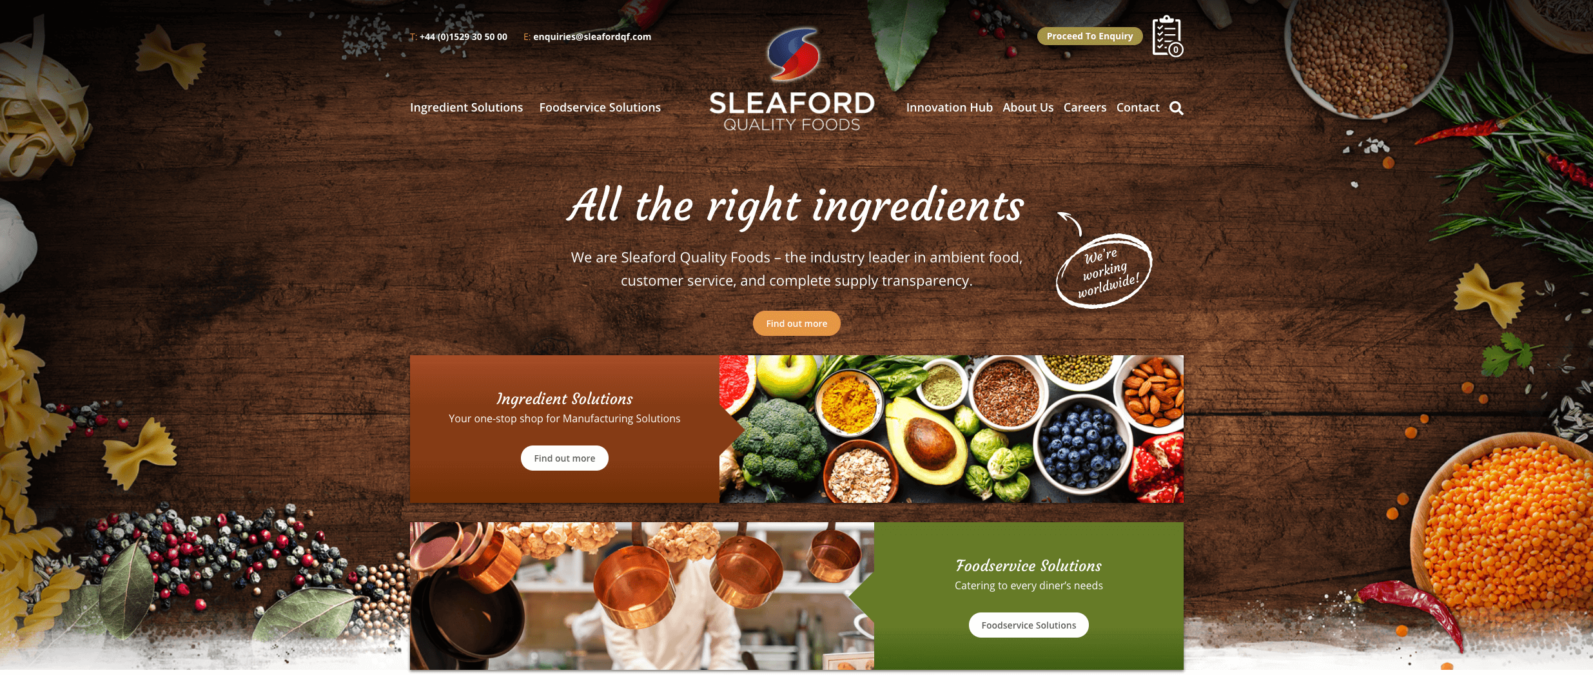 Sleaford Quality Foods is a Recipe for Success